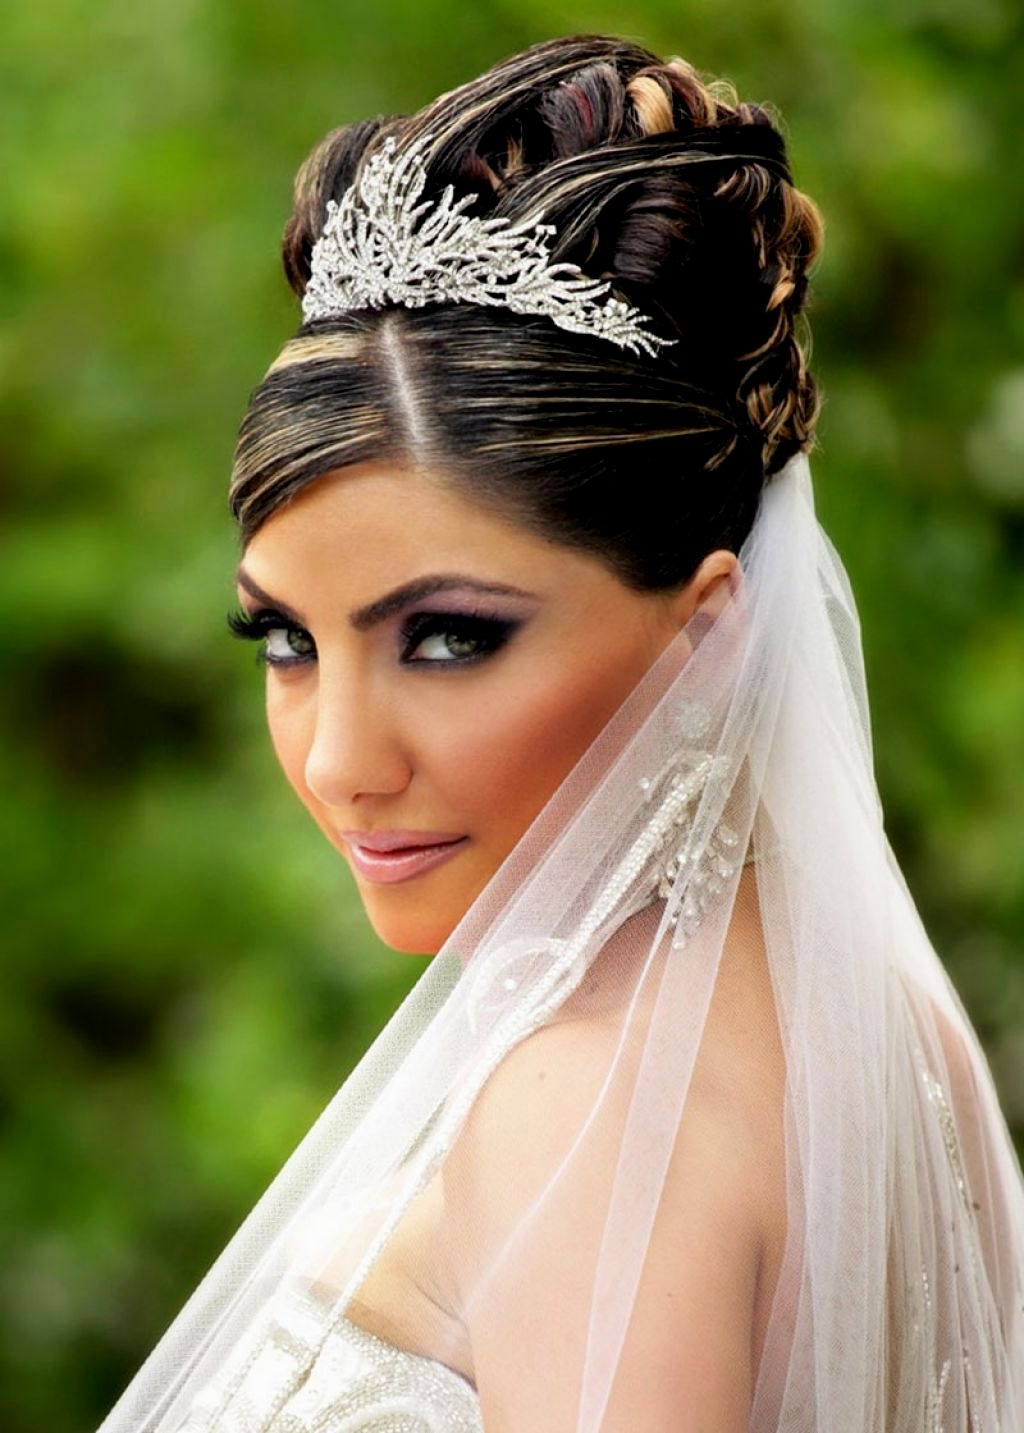 Popular Bridal Hairstyles For Medium Length Hair With Veil Intended For Bridal Hairstyles Updo With Veil (View 9 of 15)